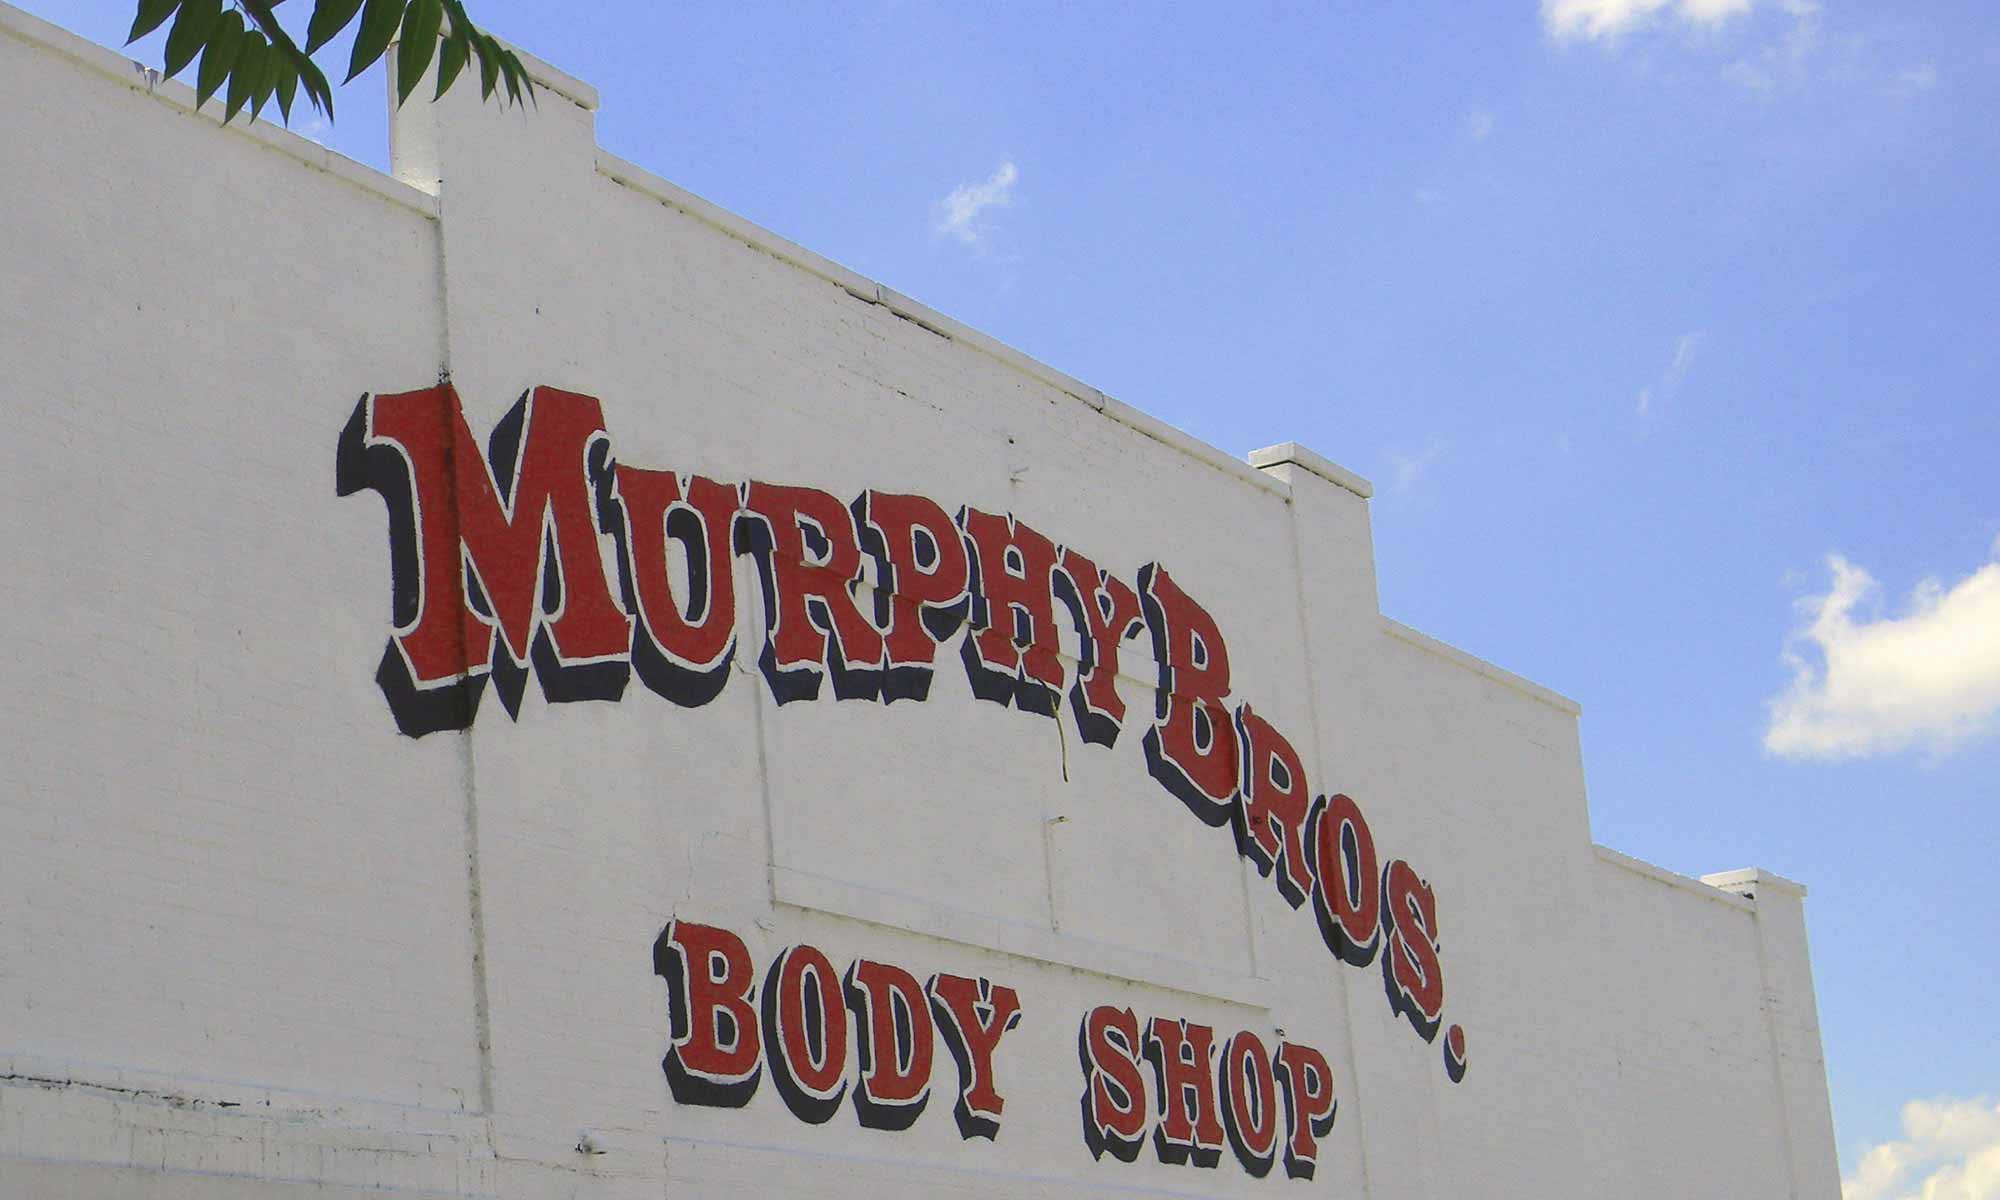 The Old Shop at Murphy Bros. Auto Body